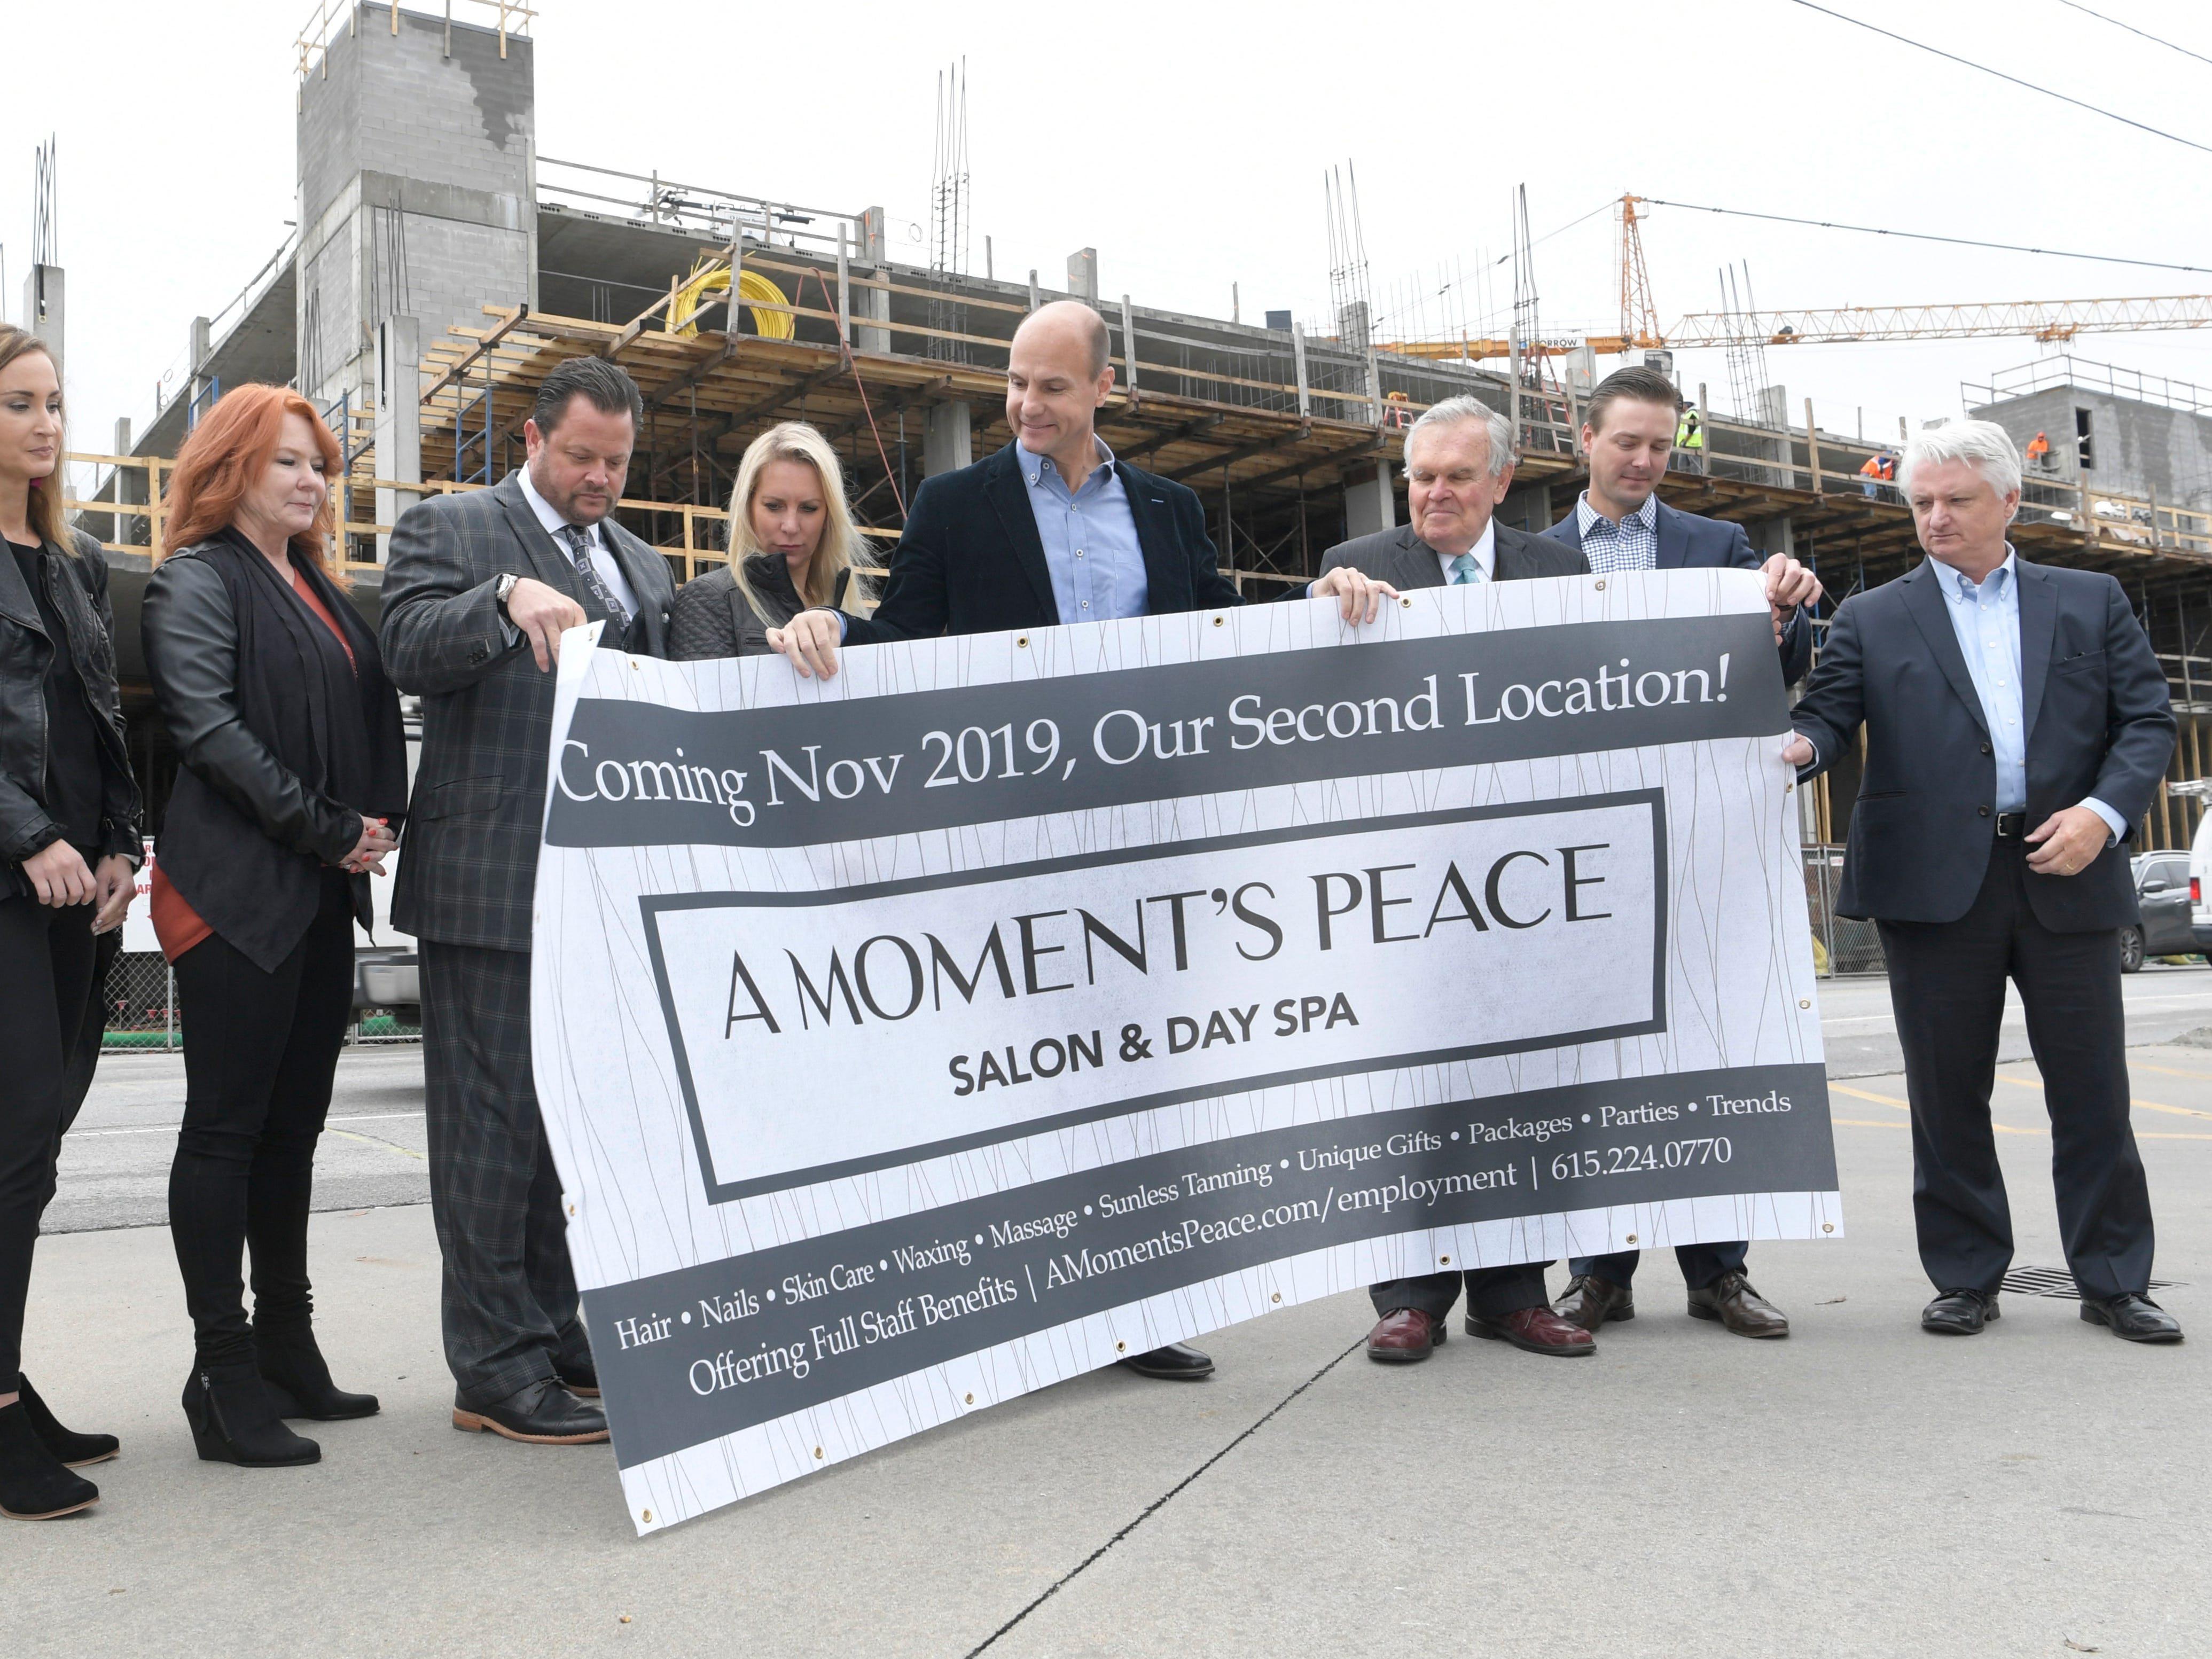 Harpeth Square and A Moment's Peace officials announce plans for the spa to open a new lacation at Harpeth Square on Monday, Nov. 5, 2018.